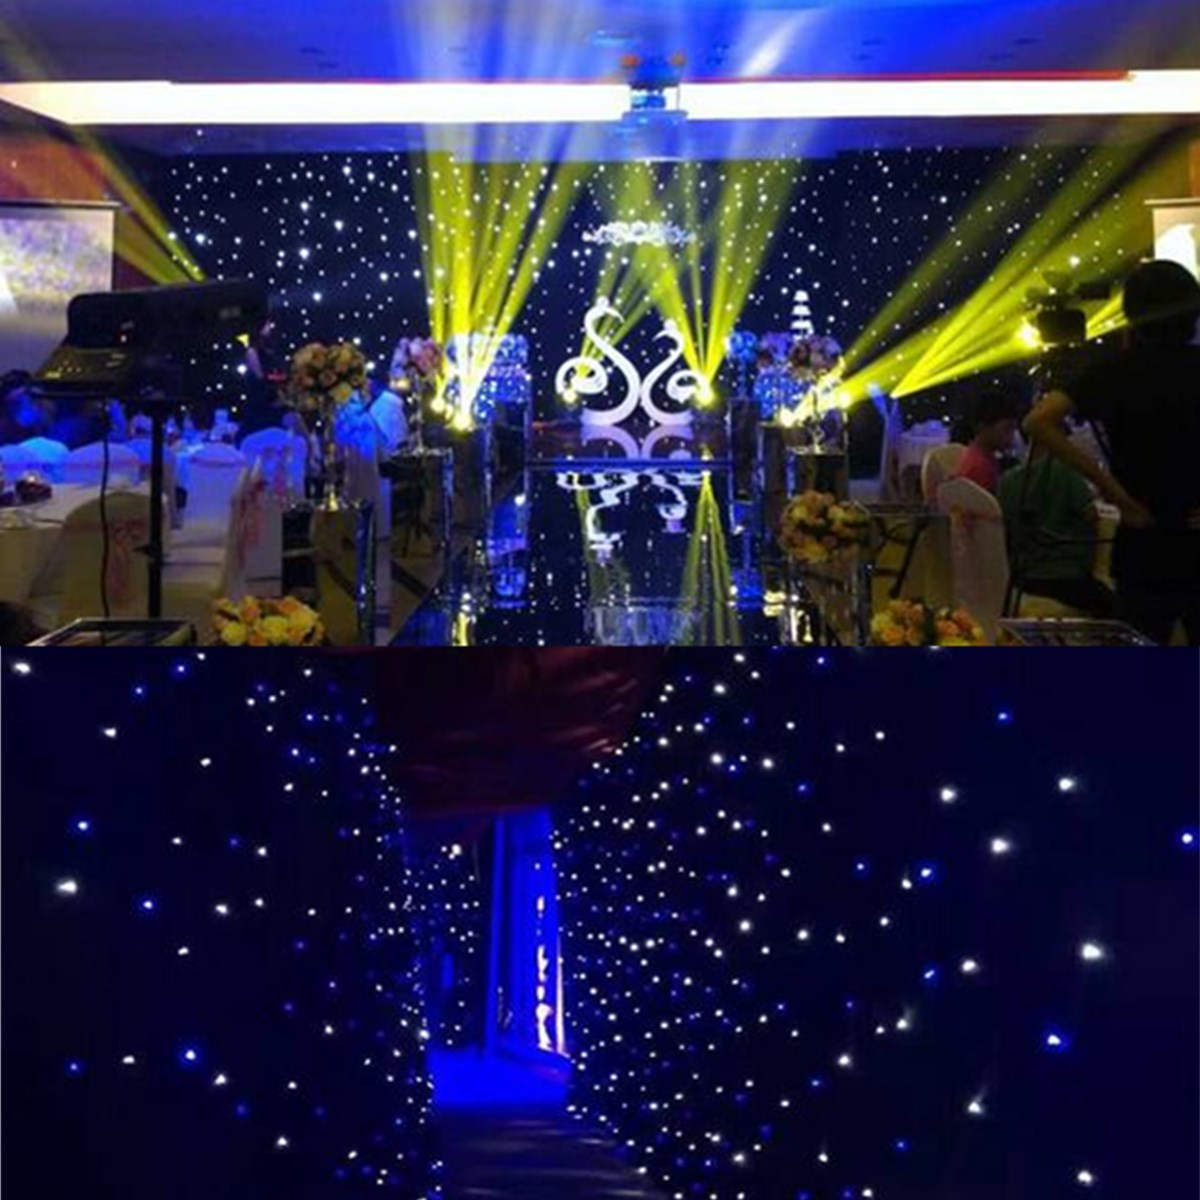 White Blue Show  LED Star Curtain 3x2m 3x3m 3x4m 4x4m Fireproof Starlight Backdrop With Controller For Wedding Party